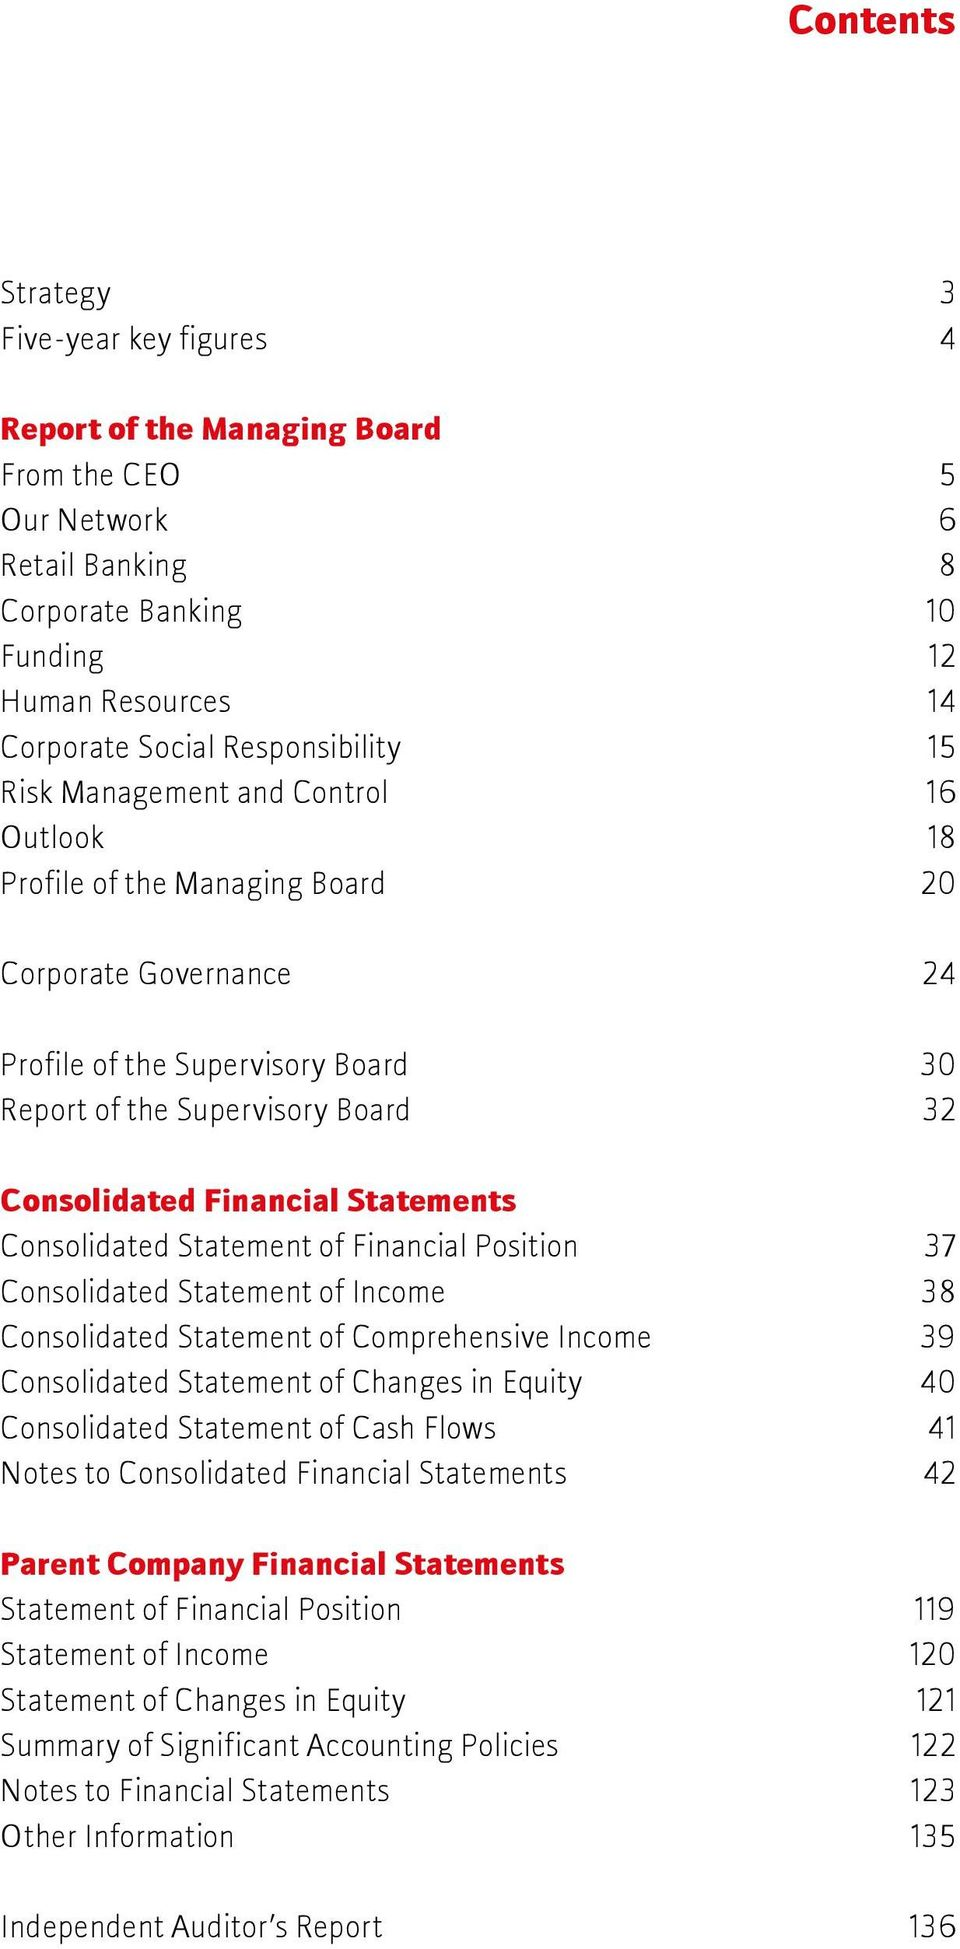 Consolidated Financial Statements Consolidated Statement of Financial Position 37 Consolidated Statement of Income 38 Consolidated Statement of Comprehensive Income 39 Consolidated Statement of